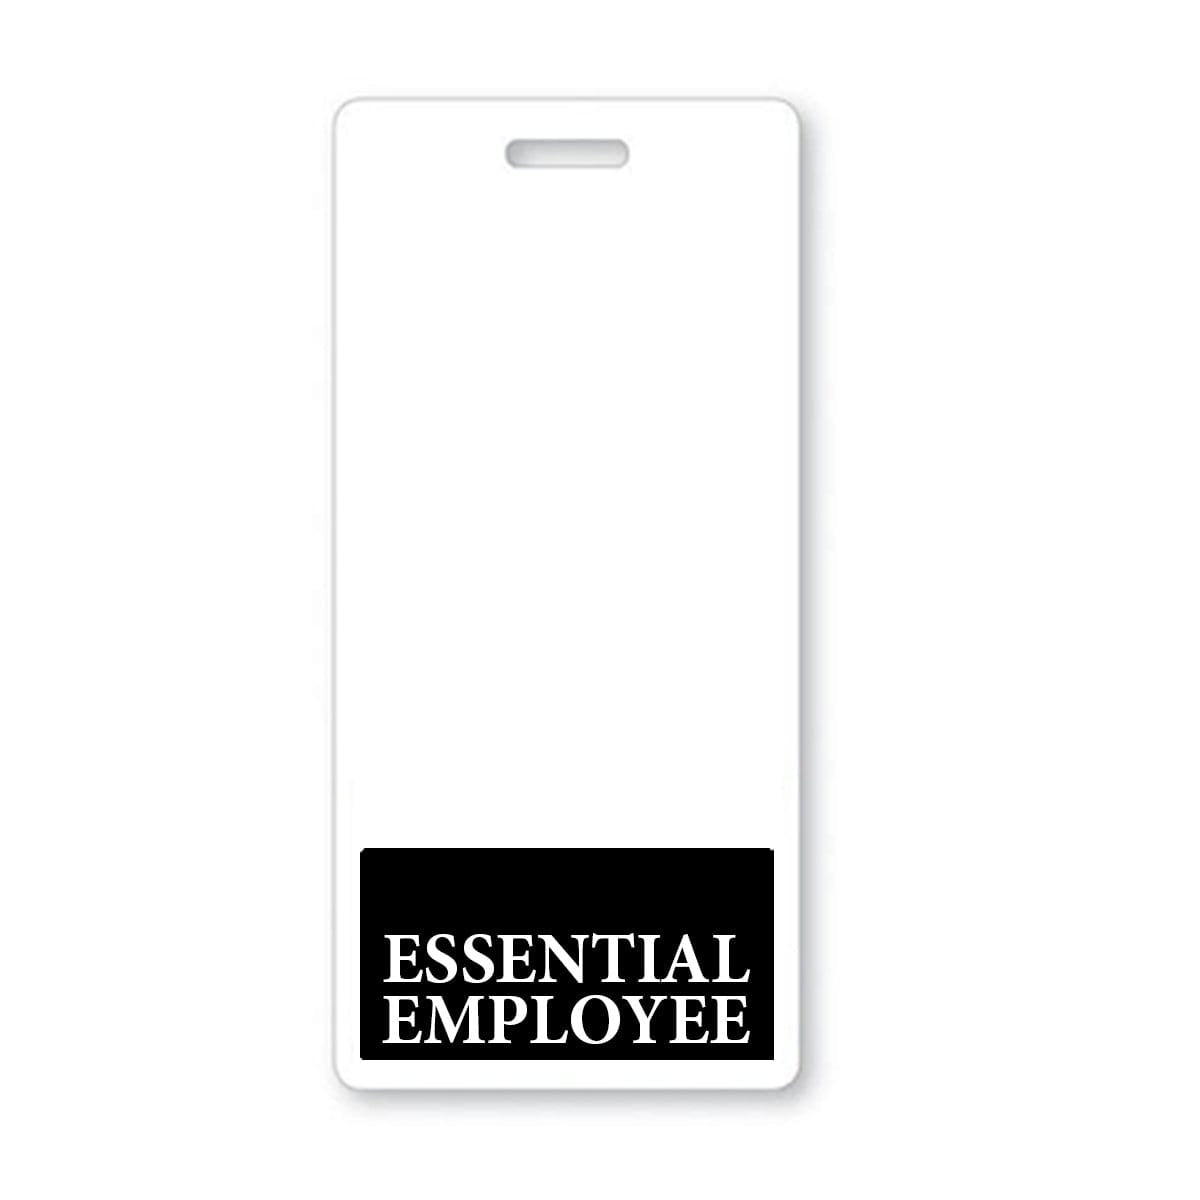 ESSENTIAL EMPLOYEE Vertical Badge Buddy with BLACK Border